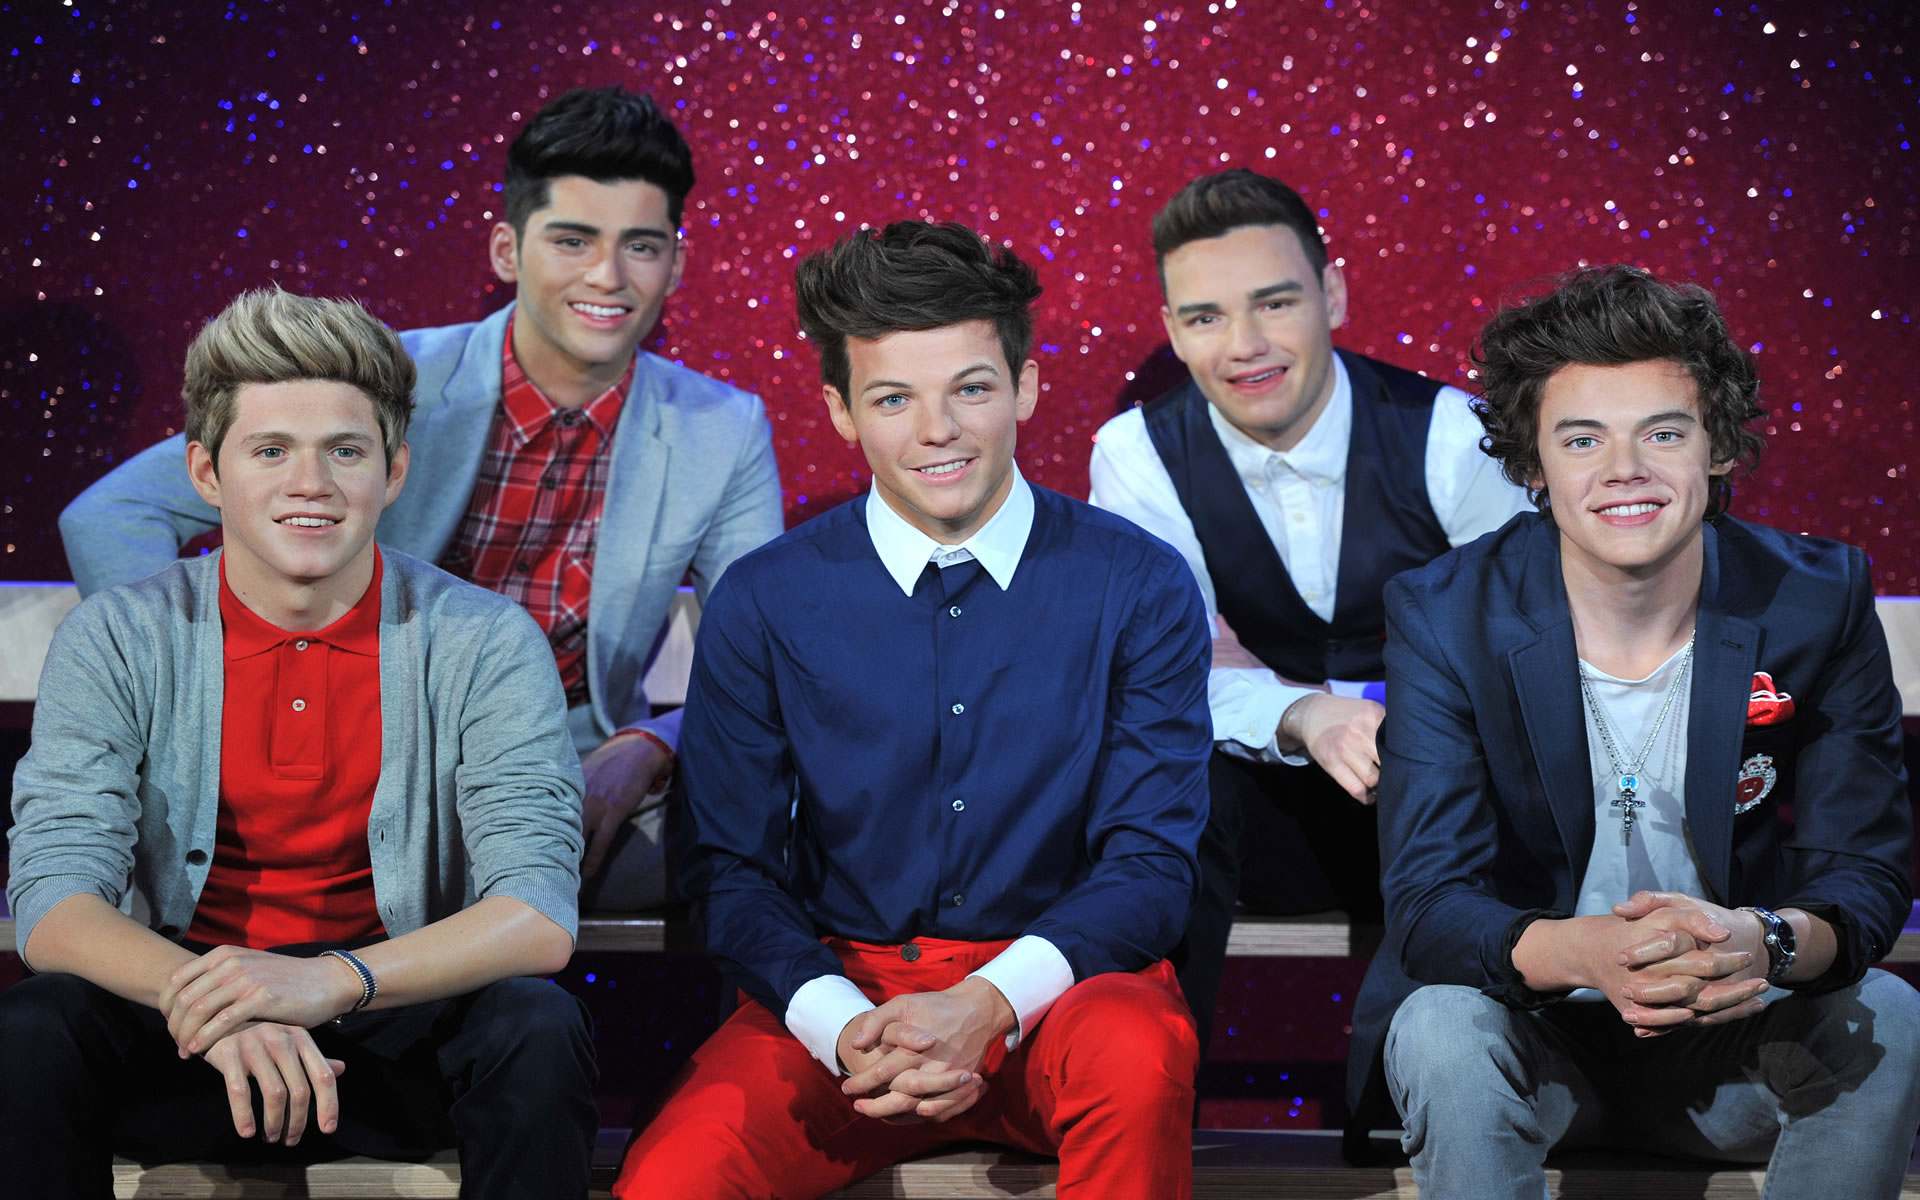 Fotos   Download One Direction 2014 Wallpaper Full Size 1920x1200